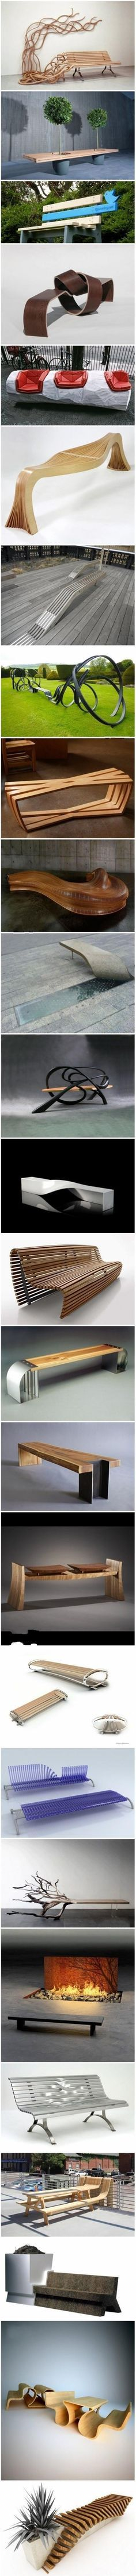 best book shelf designs images on pinterest in woodworking